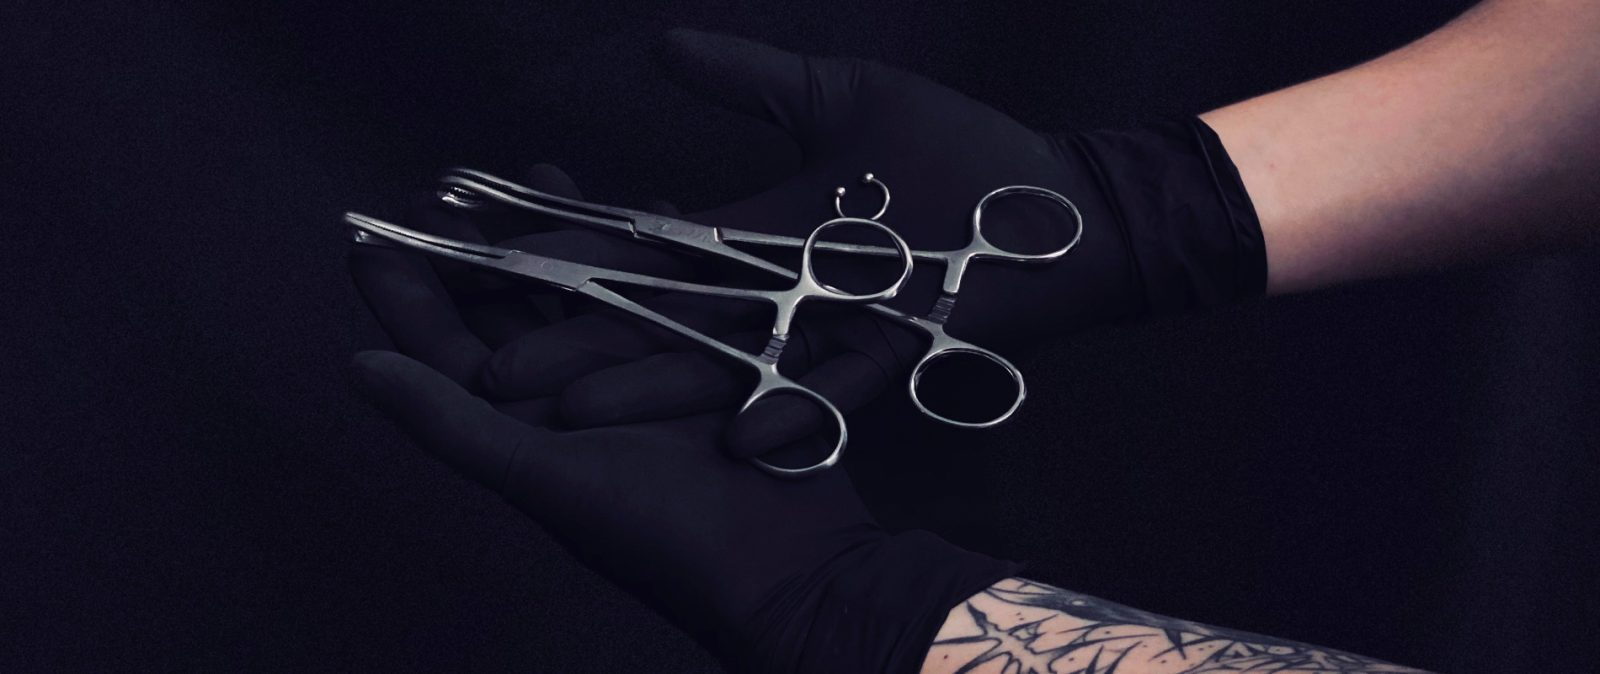 piercing olló munka, piercing scissors work